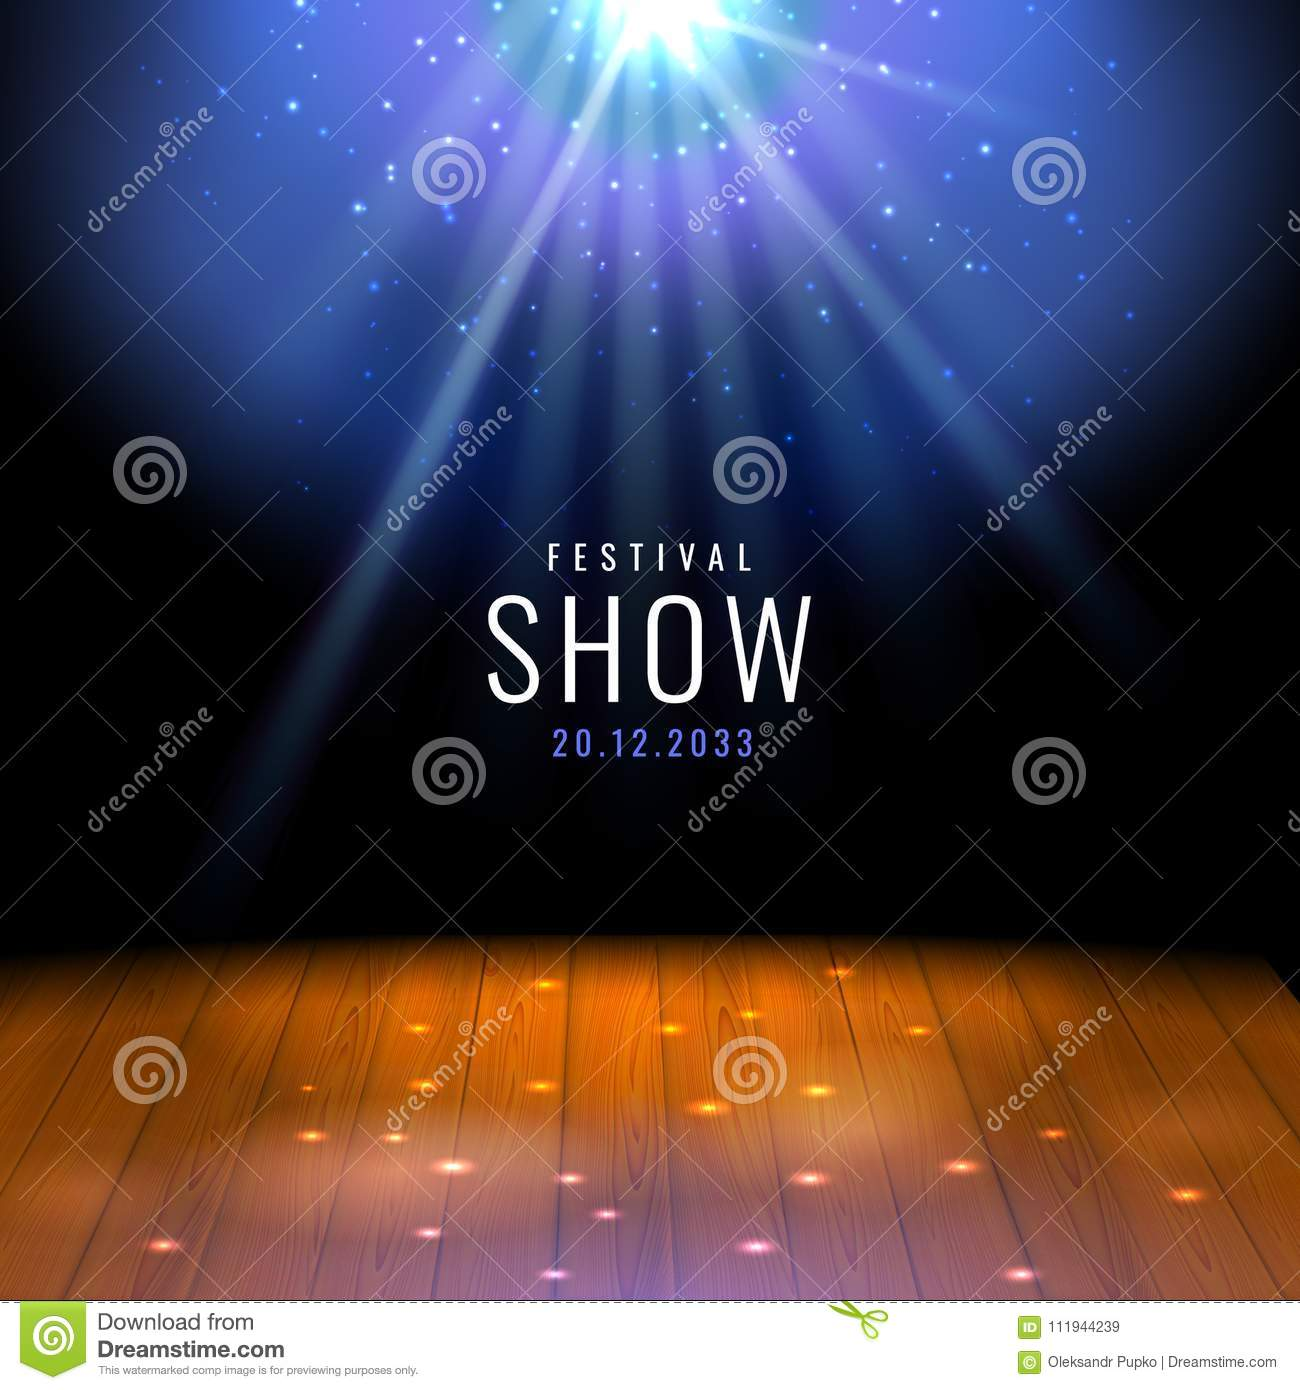 Realistic theater wooden stage or floor with spotlight Vector festive template with lights and scene. Poster design for